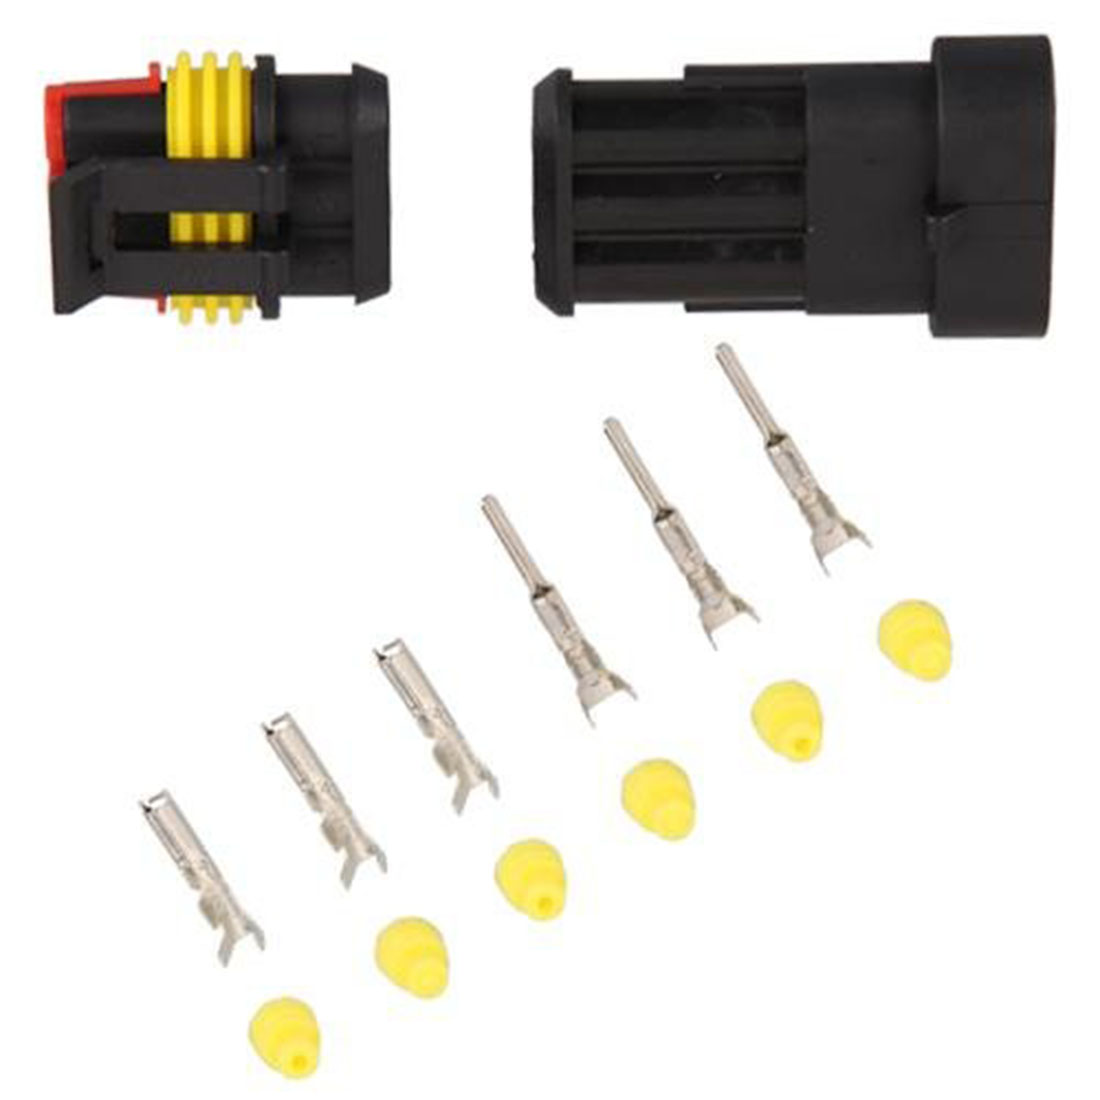 Dewtreetali Good selling 10 Set Kits Car Auto 3 Pin Way Waterproof Electrical Wire Cable Connector Plug Set Car Truck